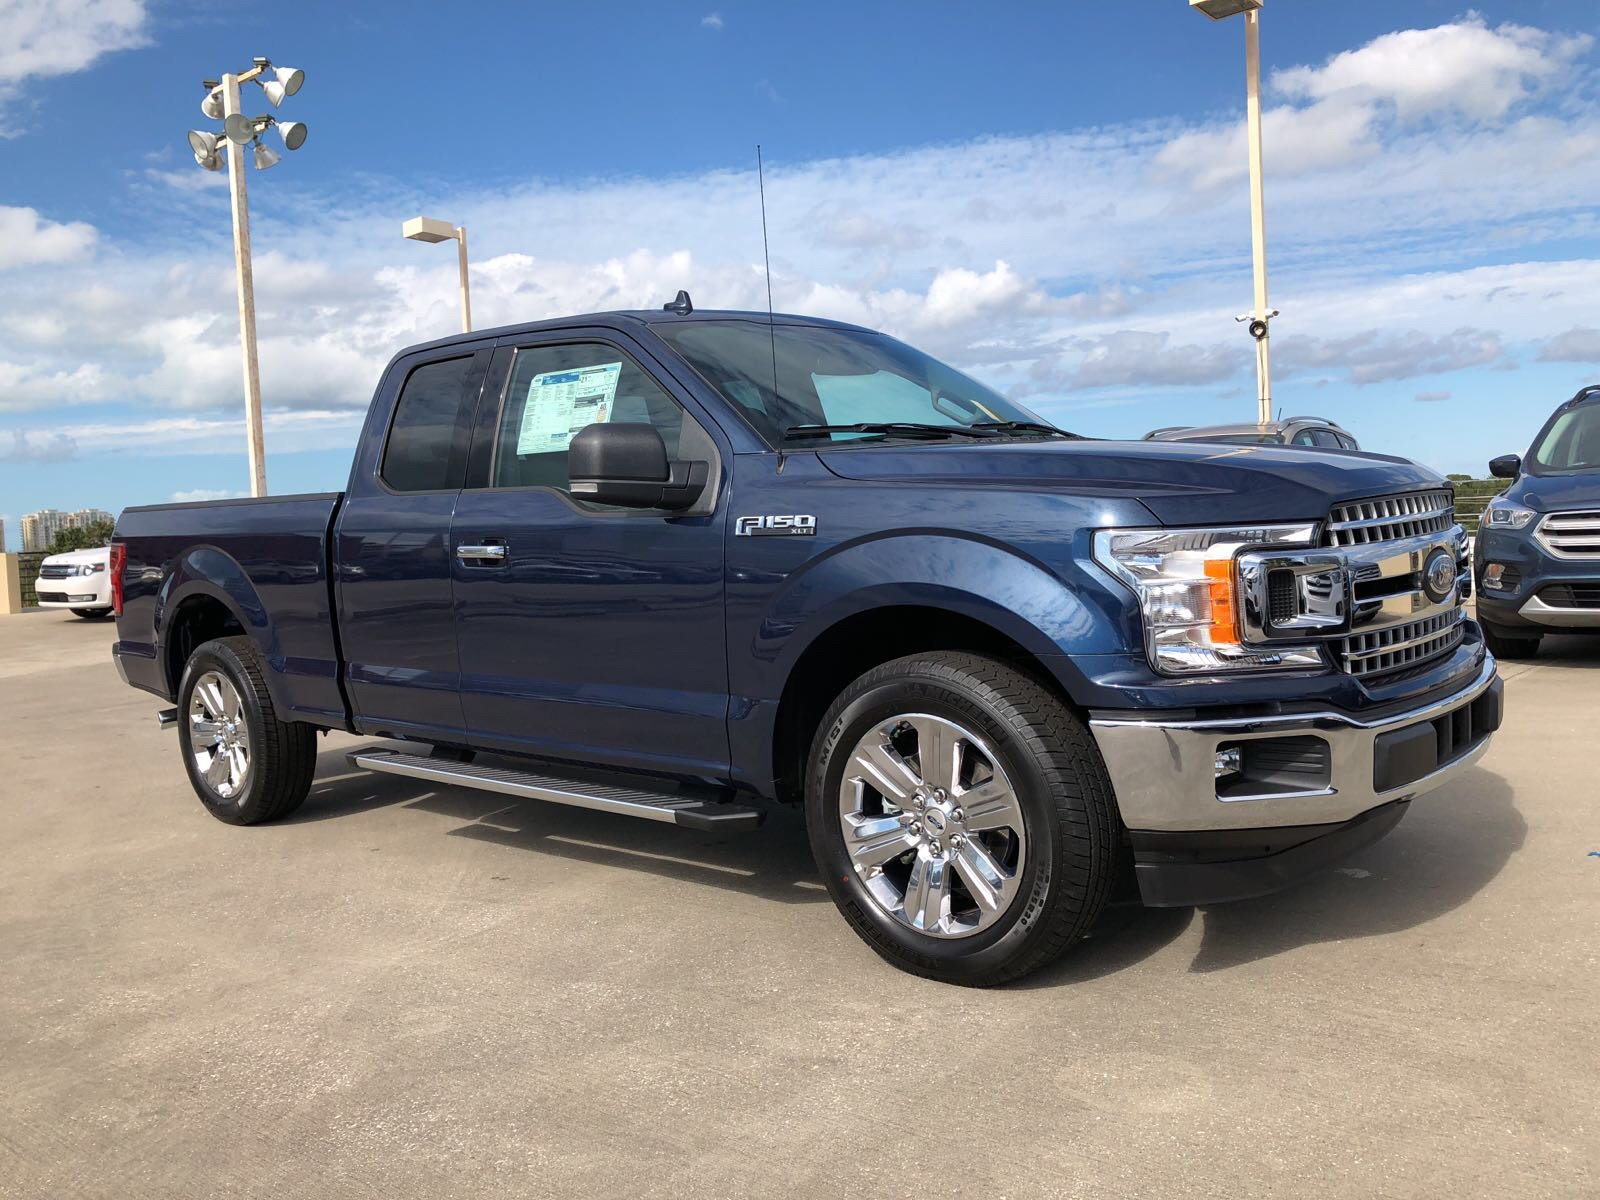 Ford F150 Stx | 2018, 2019, 2020 Ford Cars